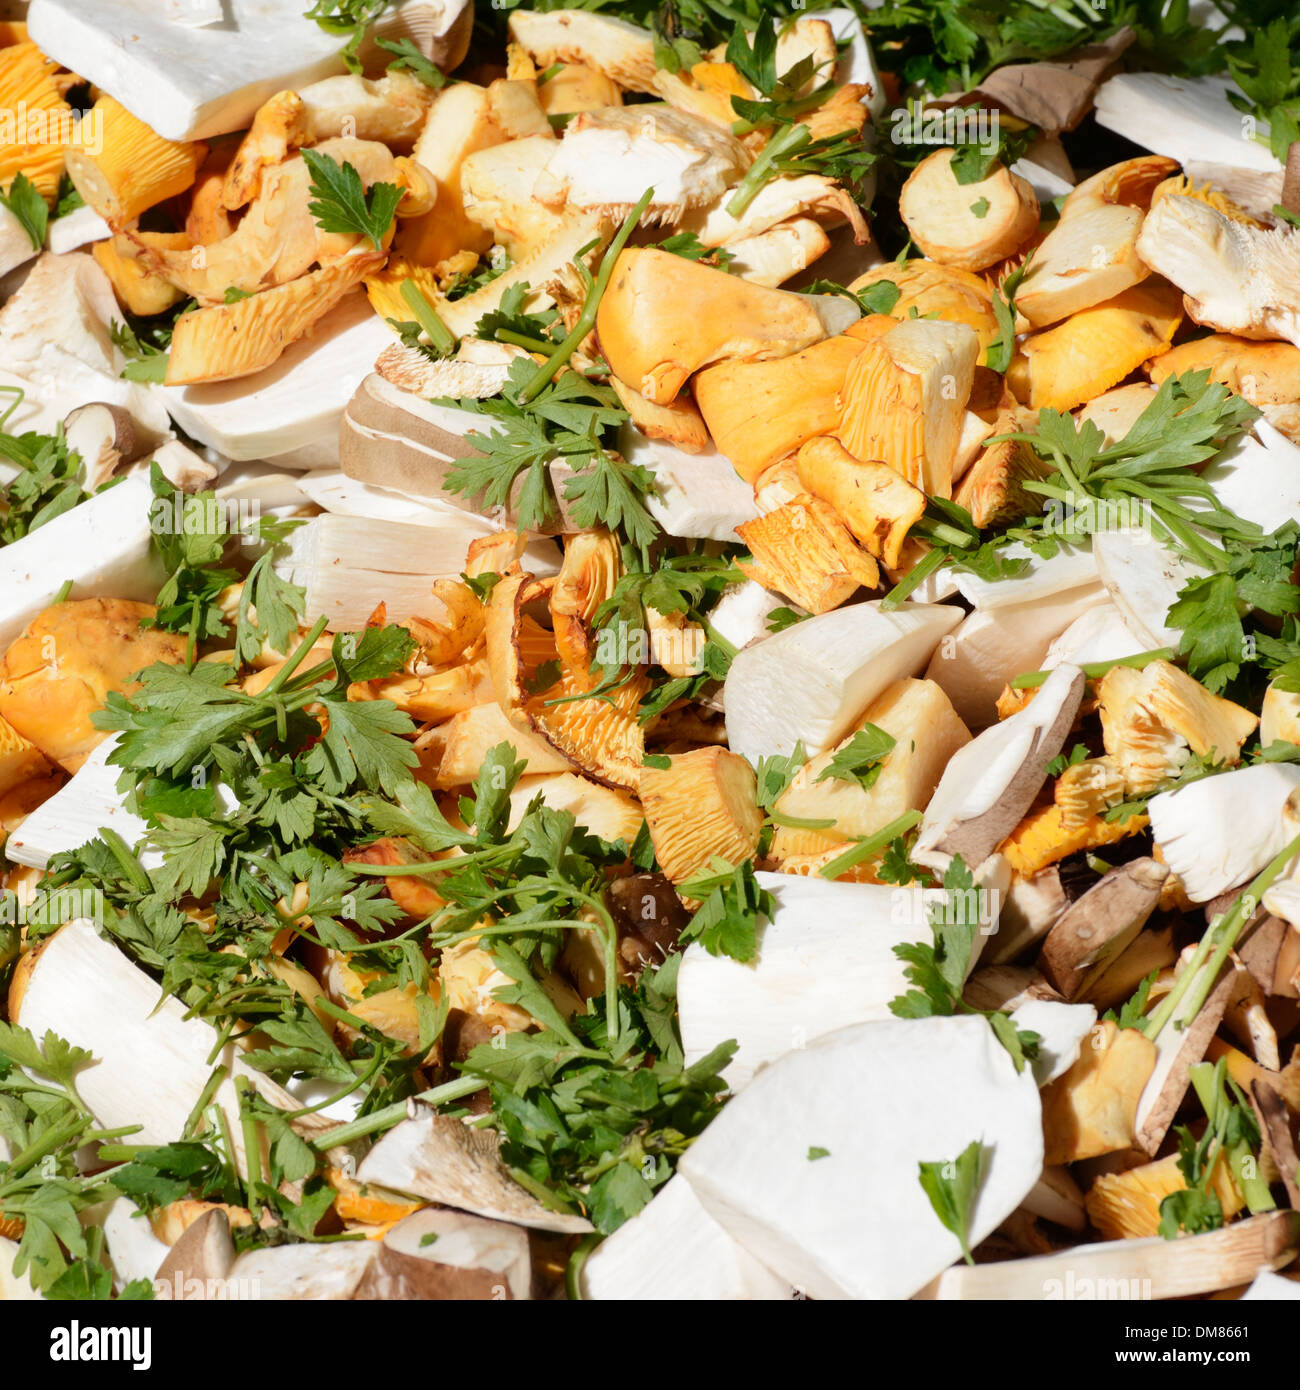 Various sliced mushrooms with parlsey and other herbage sold at the market - Stock Image